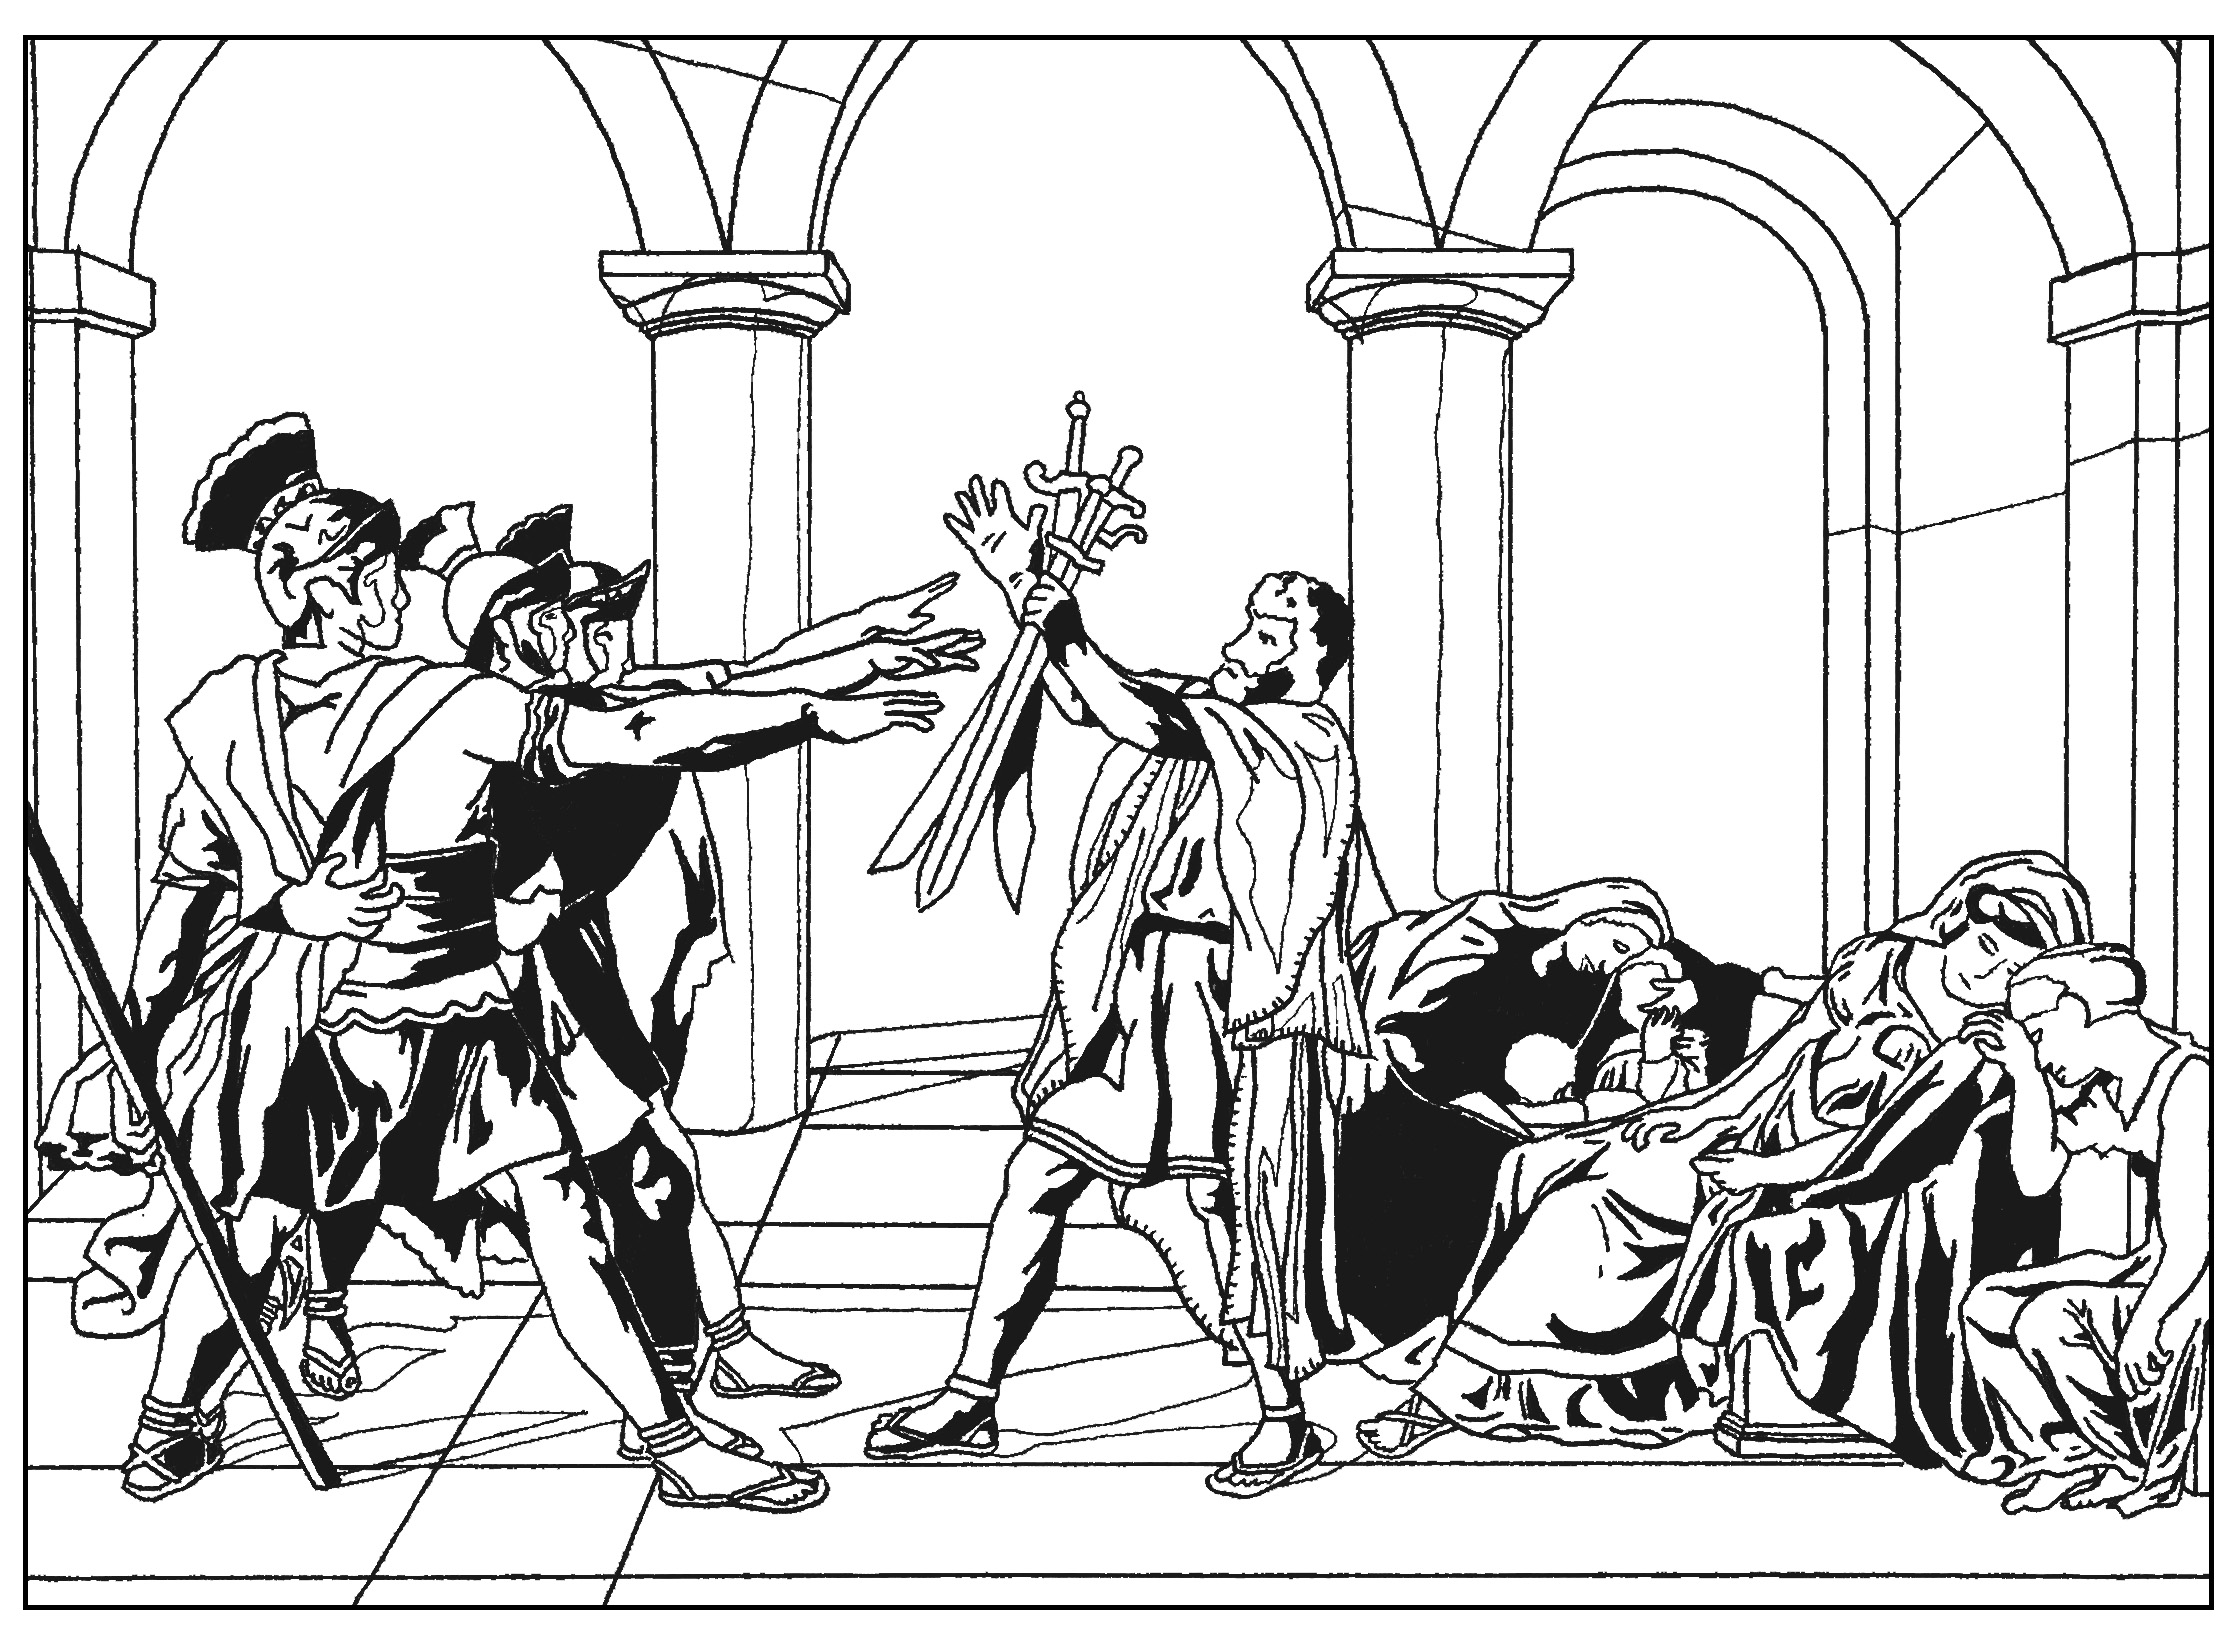 masterpiece coloring pages masterpiece coloring pages scripture coloring masterpiece pages coloring